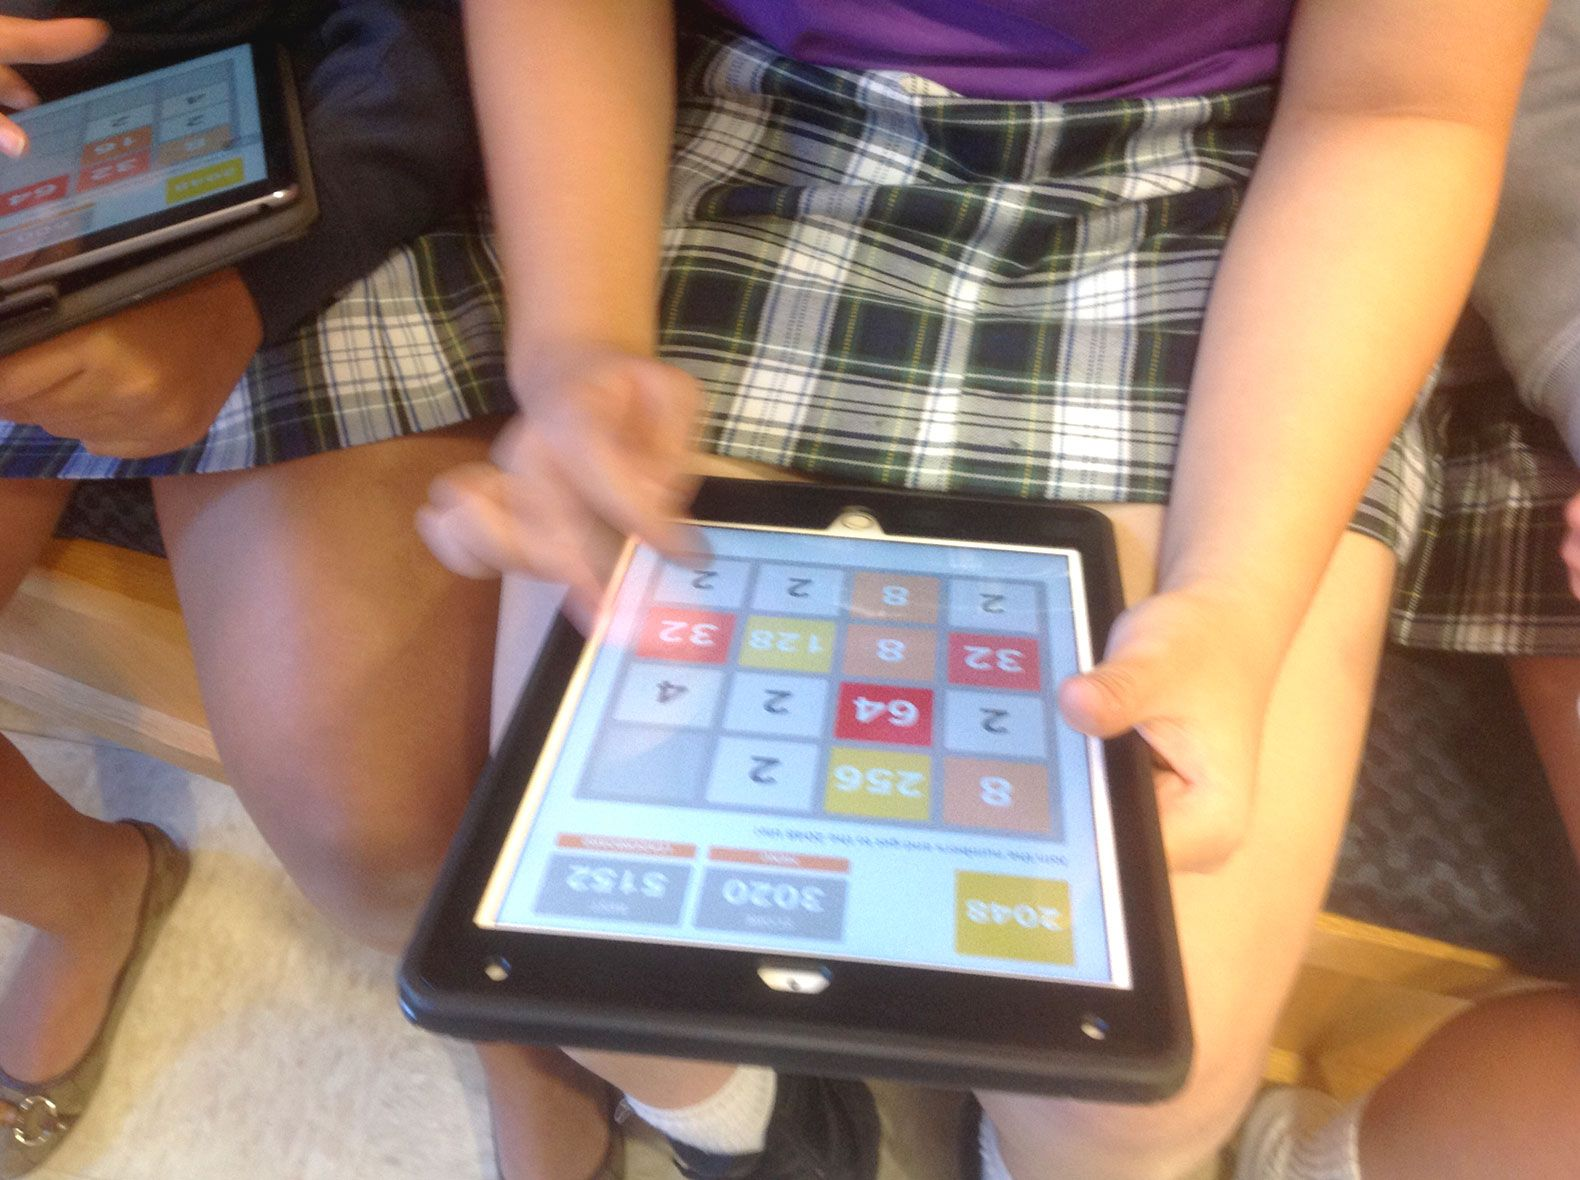 In a MathMob at the author's school, this student is intent on winning a game of 2048.